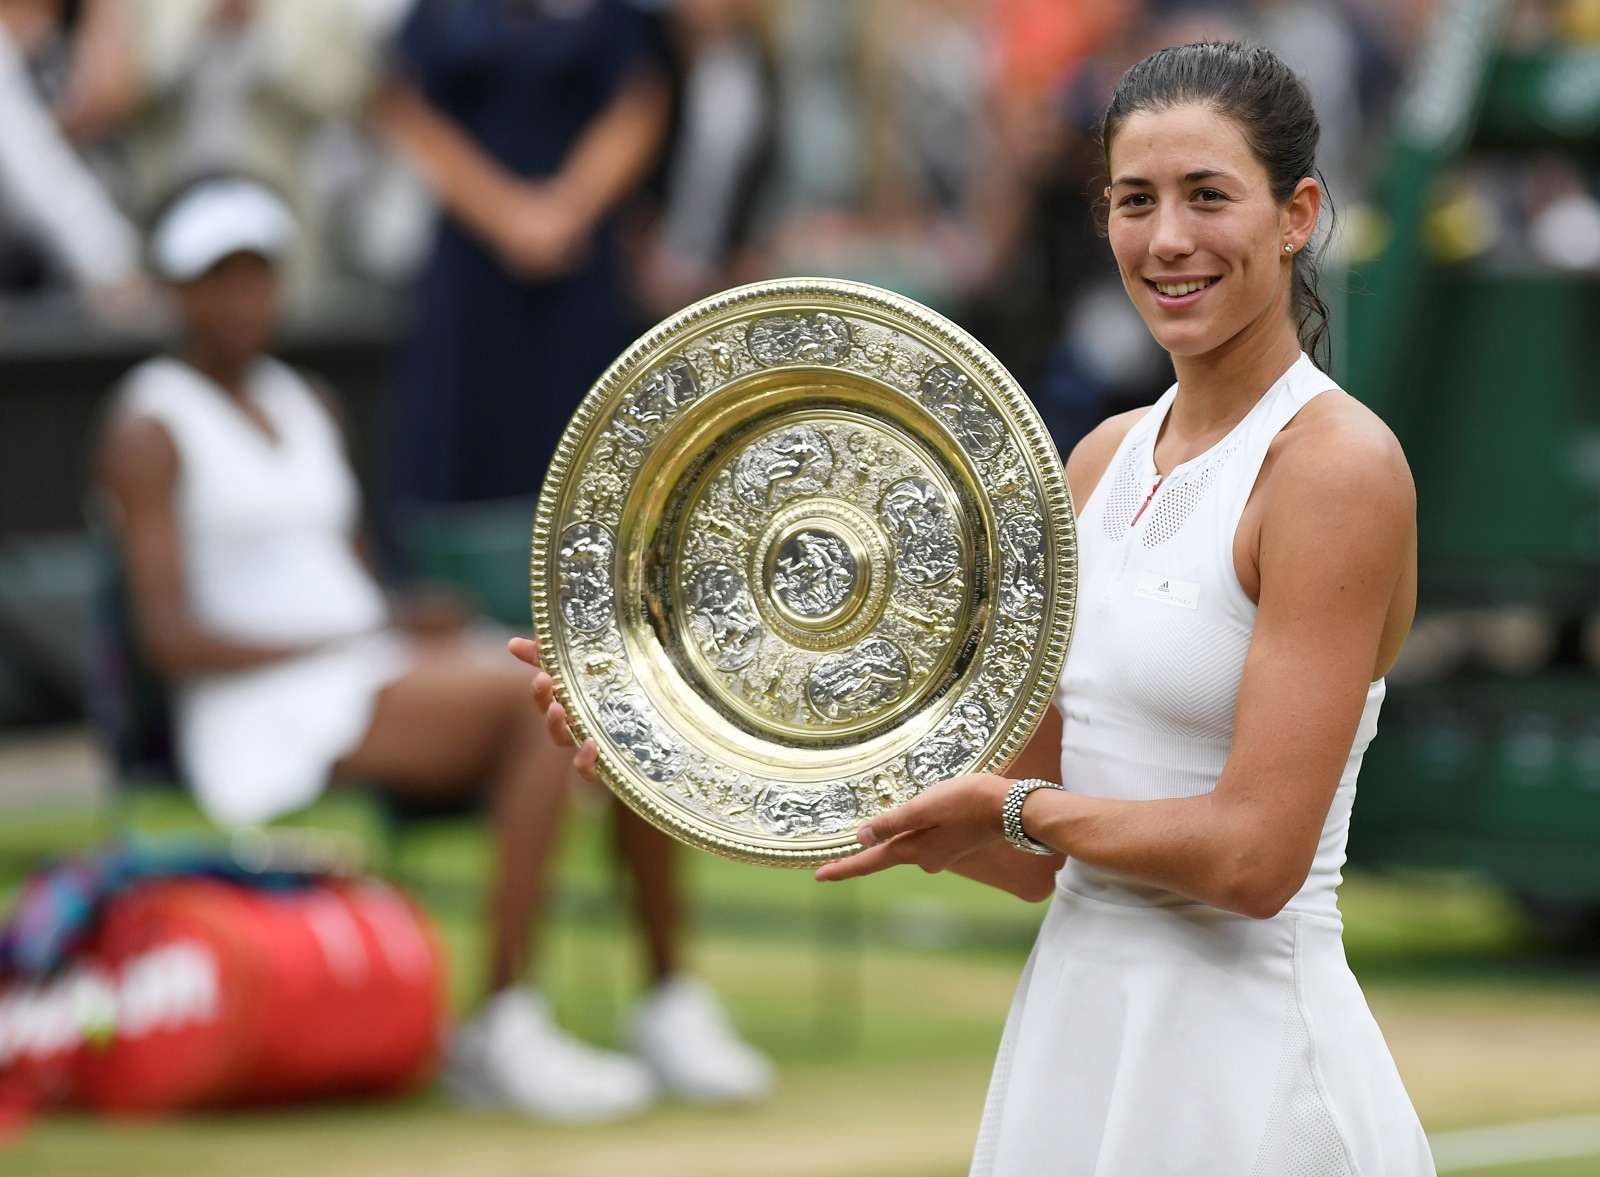 #10. Garbine Muguruza (tie): Total Earnings: $5.9 million. Earnings fell for the two-time major winner as her ranking dropped to a recent No. 28 from second in the world at the end of 2017. She still maintains a deep endorsement roster with Adidas, Evian, Beats, Rolex and Babolat. (Image: Reuters) (Caption Credit: Forbes)